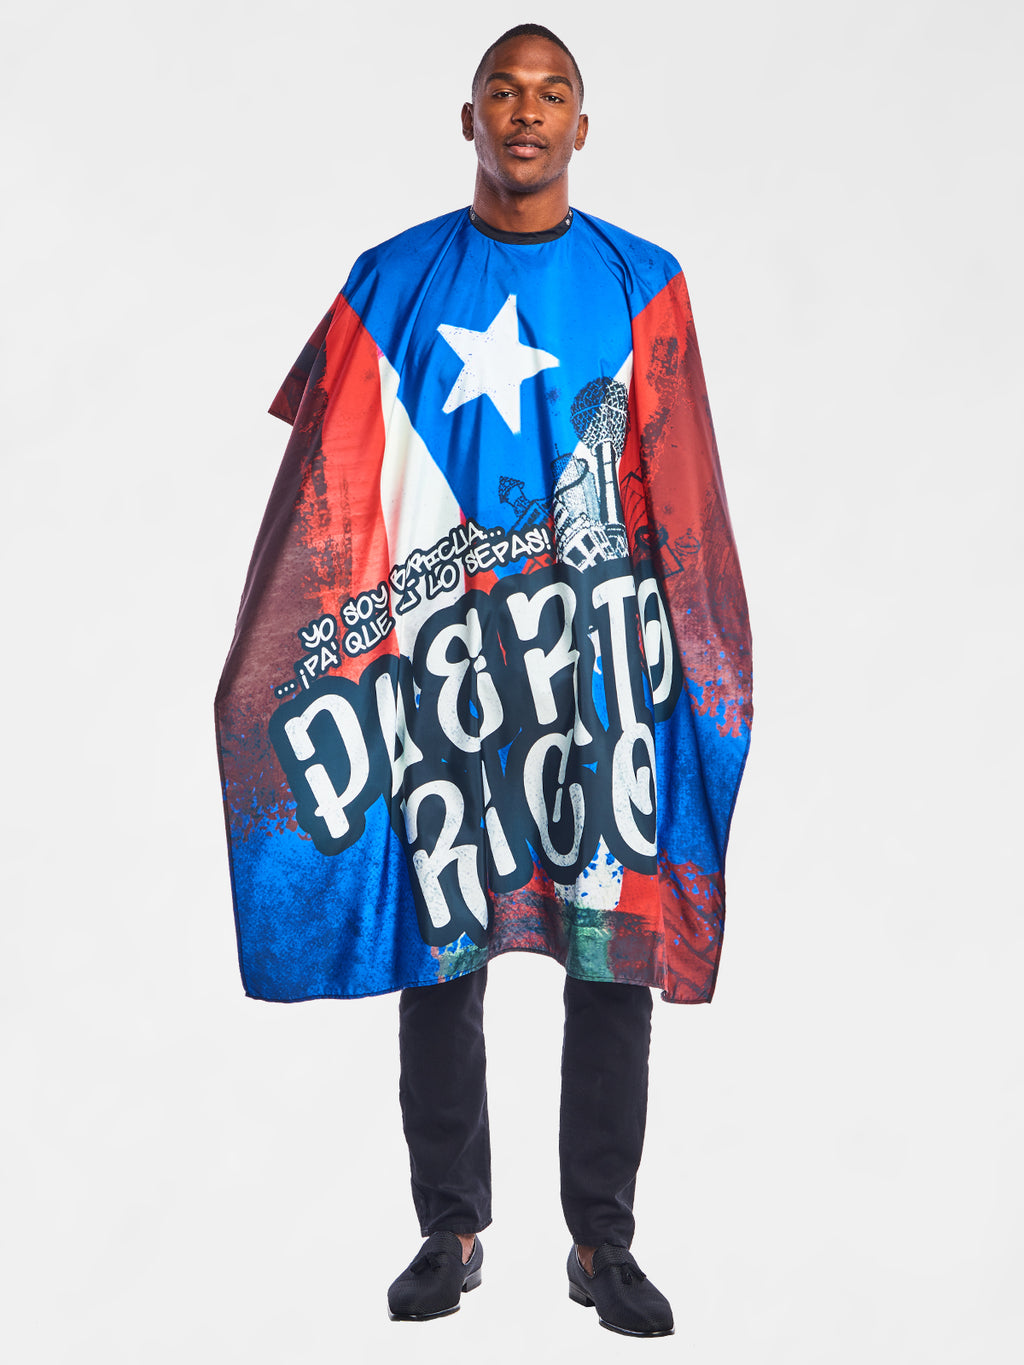 Boricua Barber Cape | The International Cape Collection